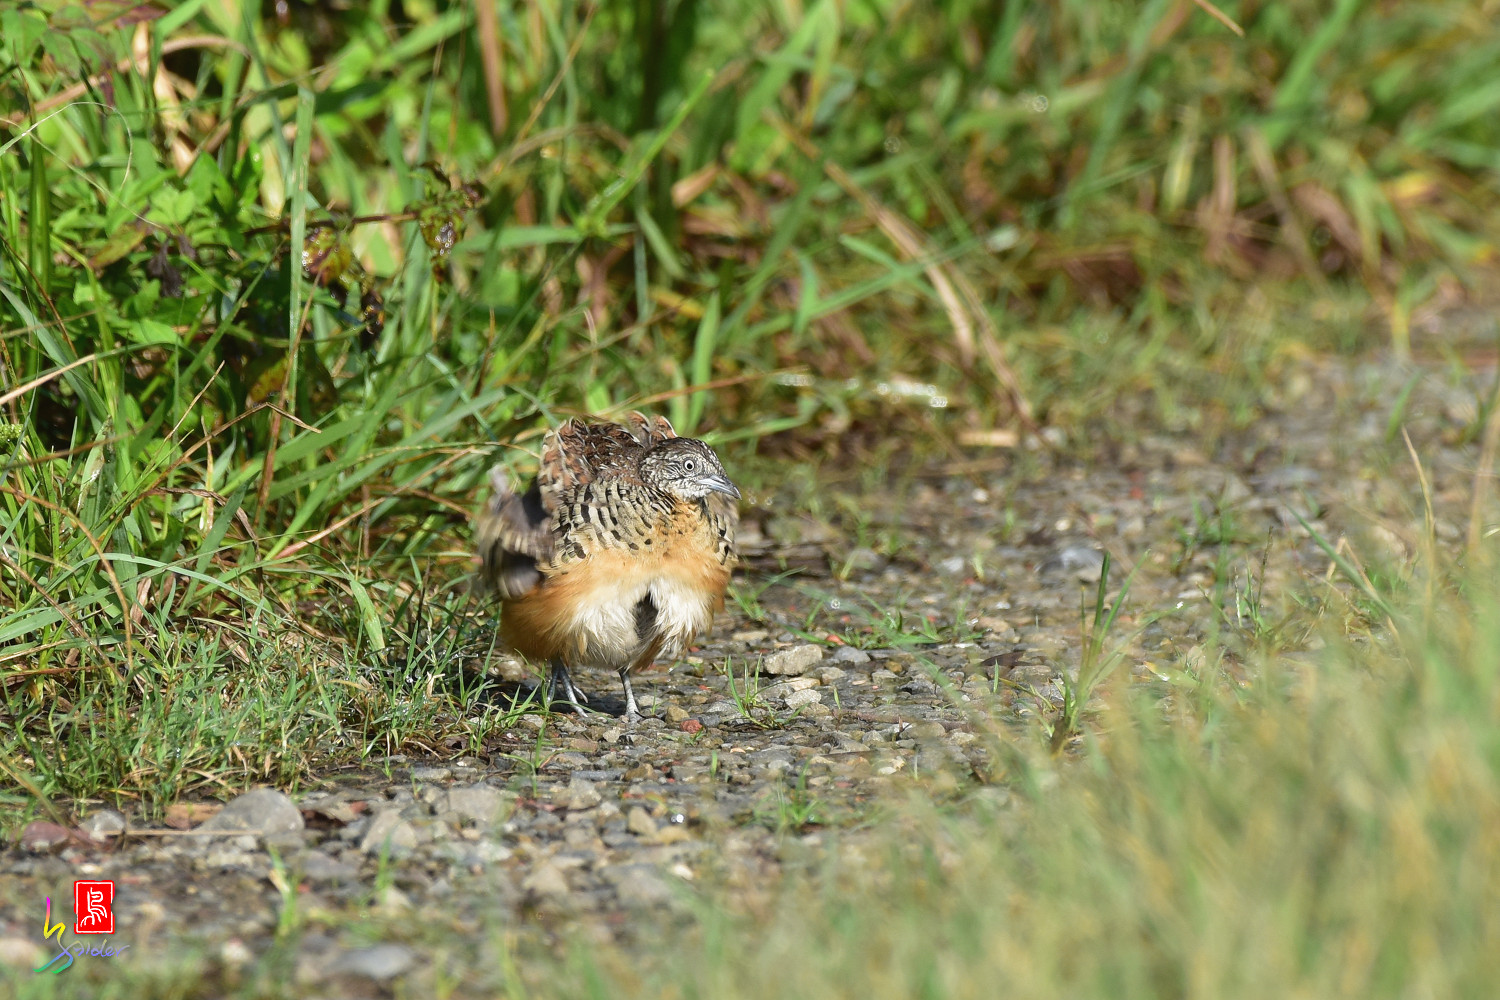 Barred_Buttonquail_3728